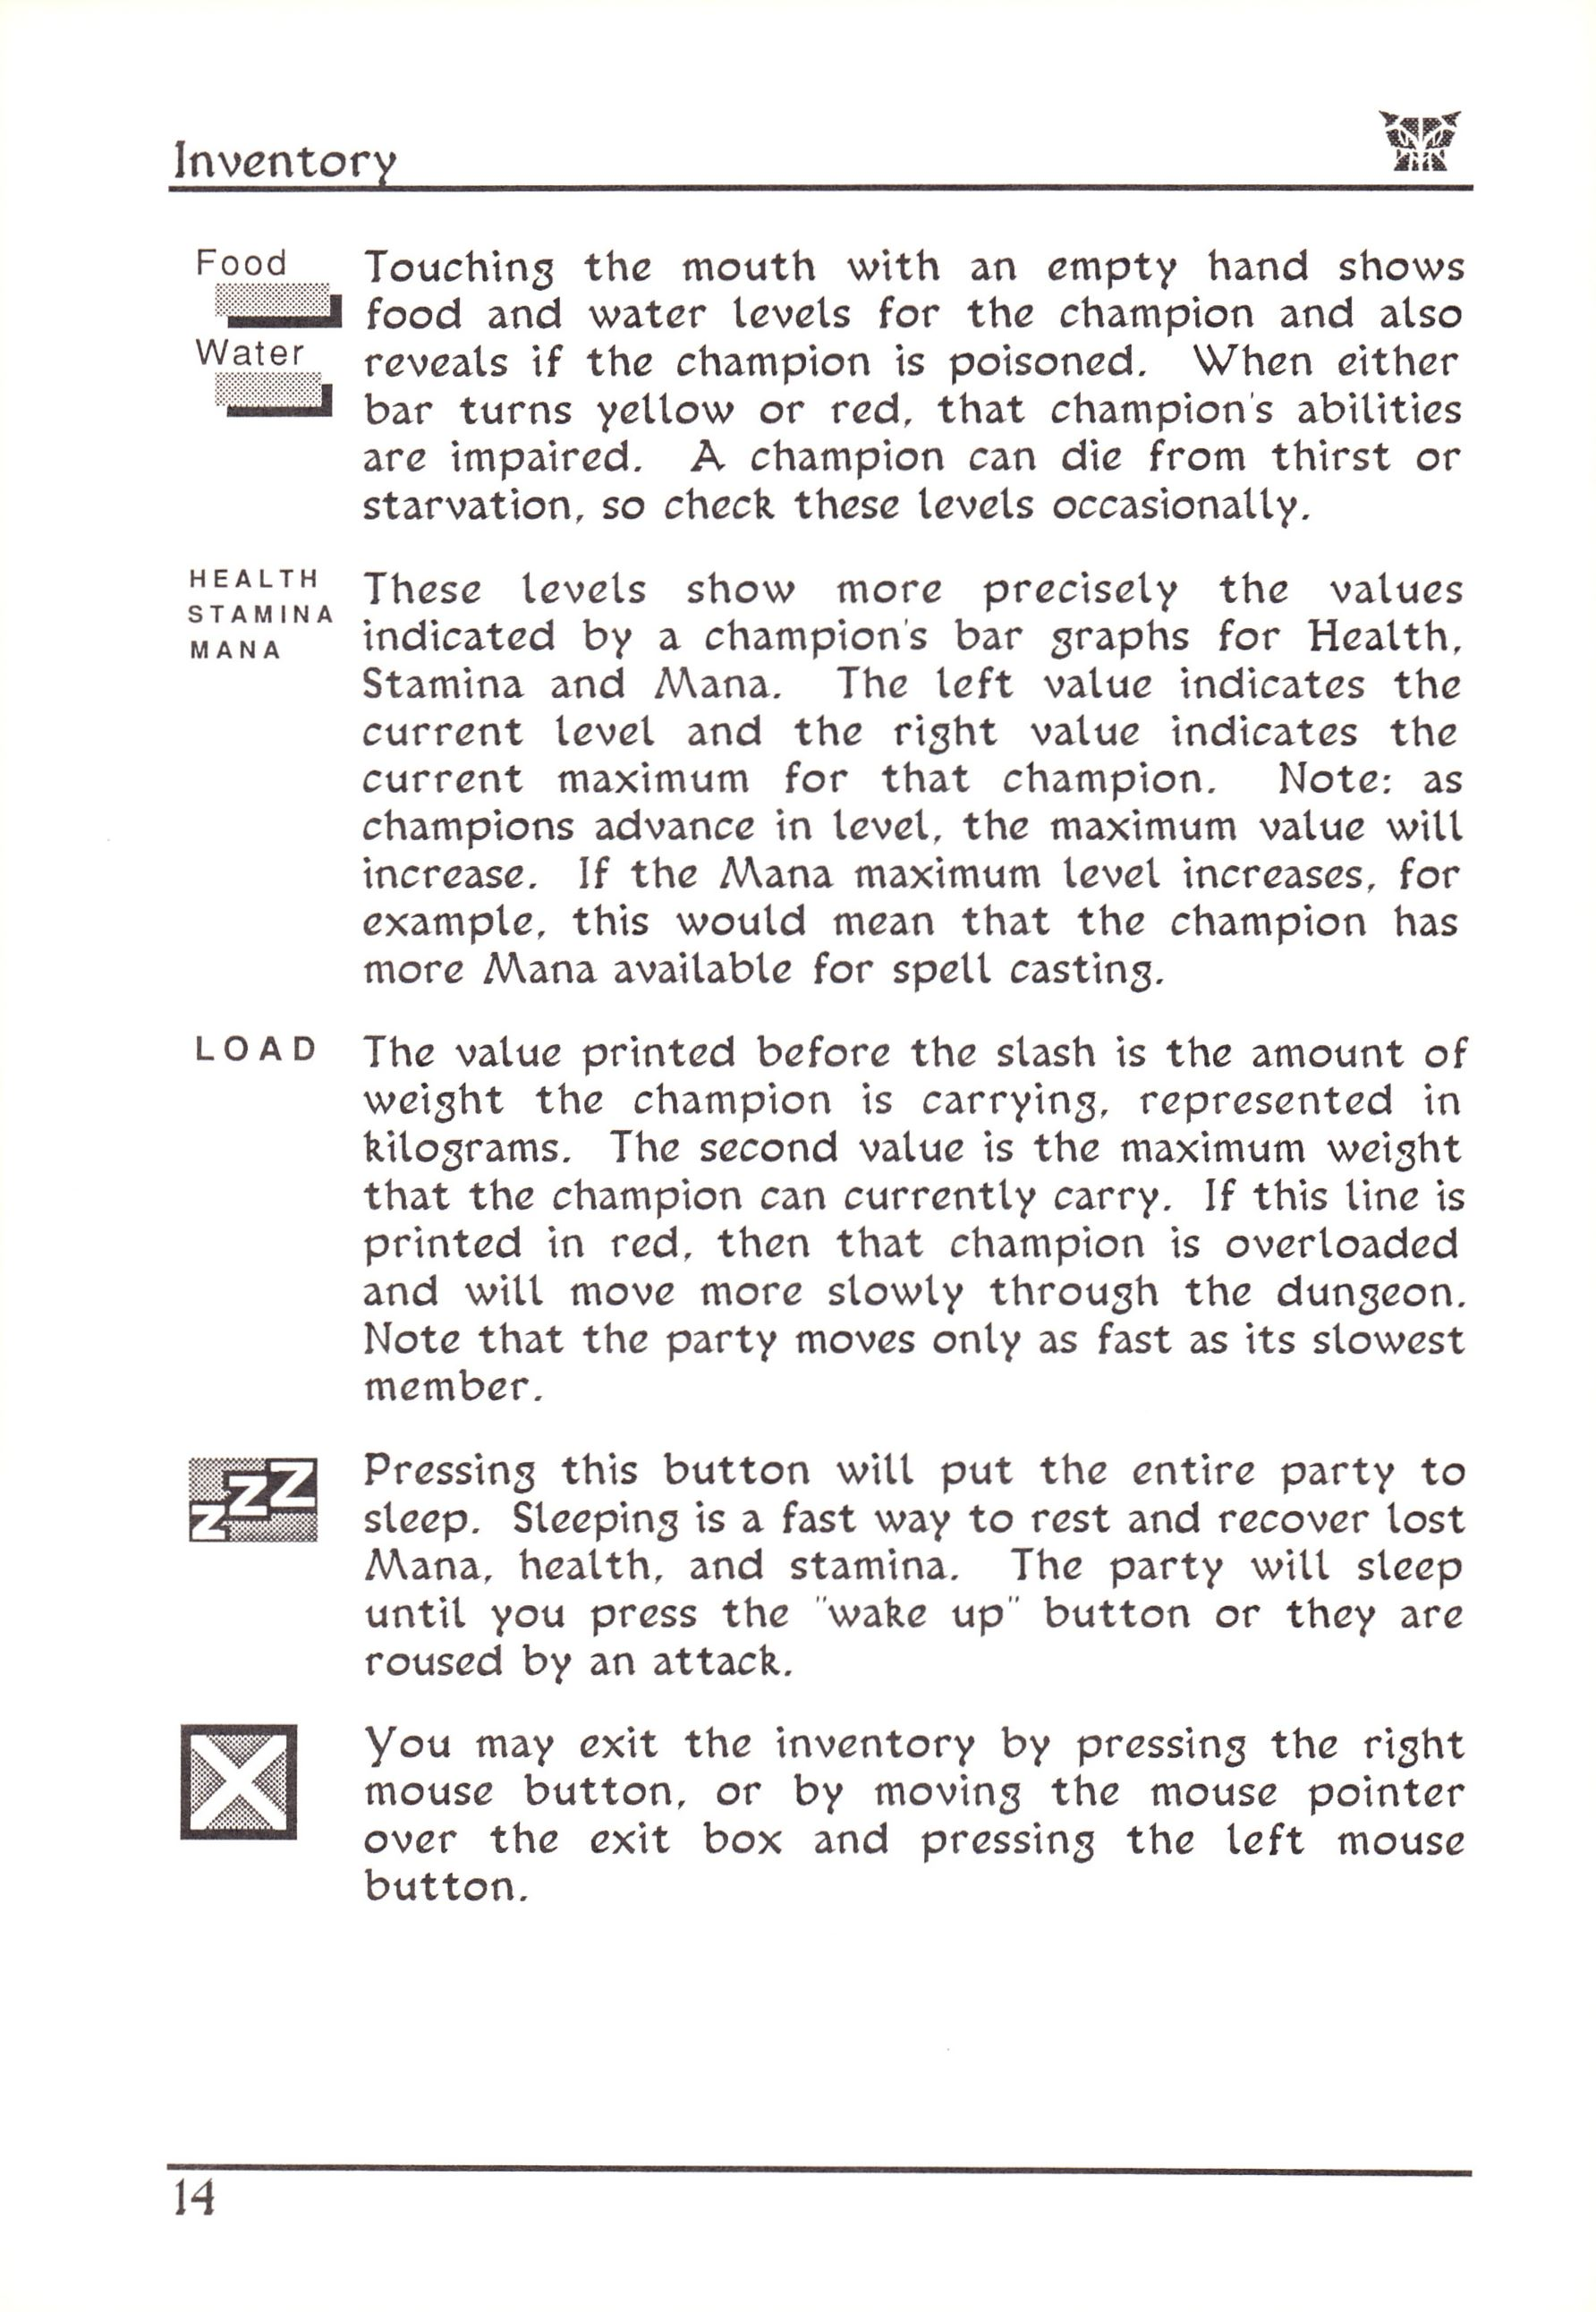 Game - Dungeon Master - US - Atari ST - Early Box - Manual - Page 038 - Scan